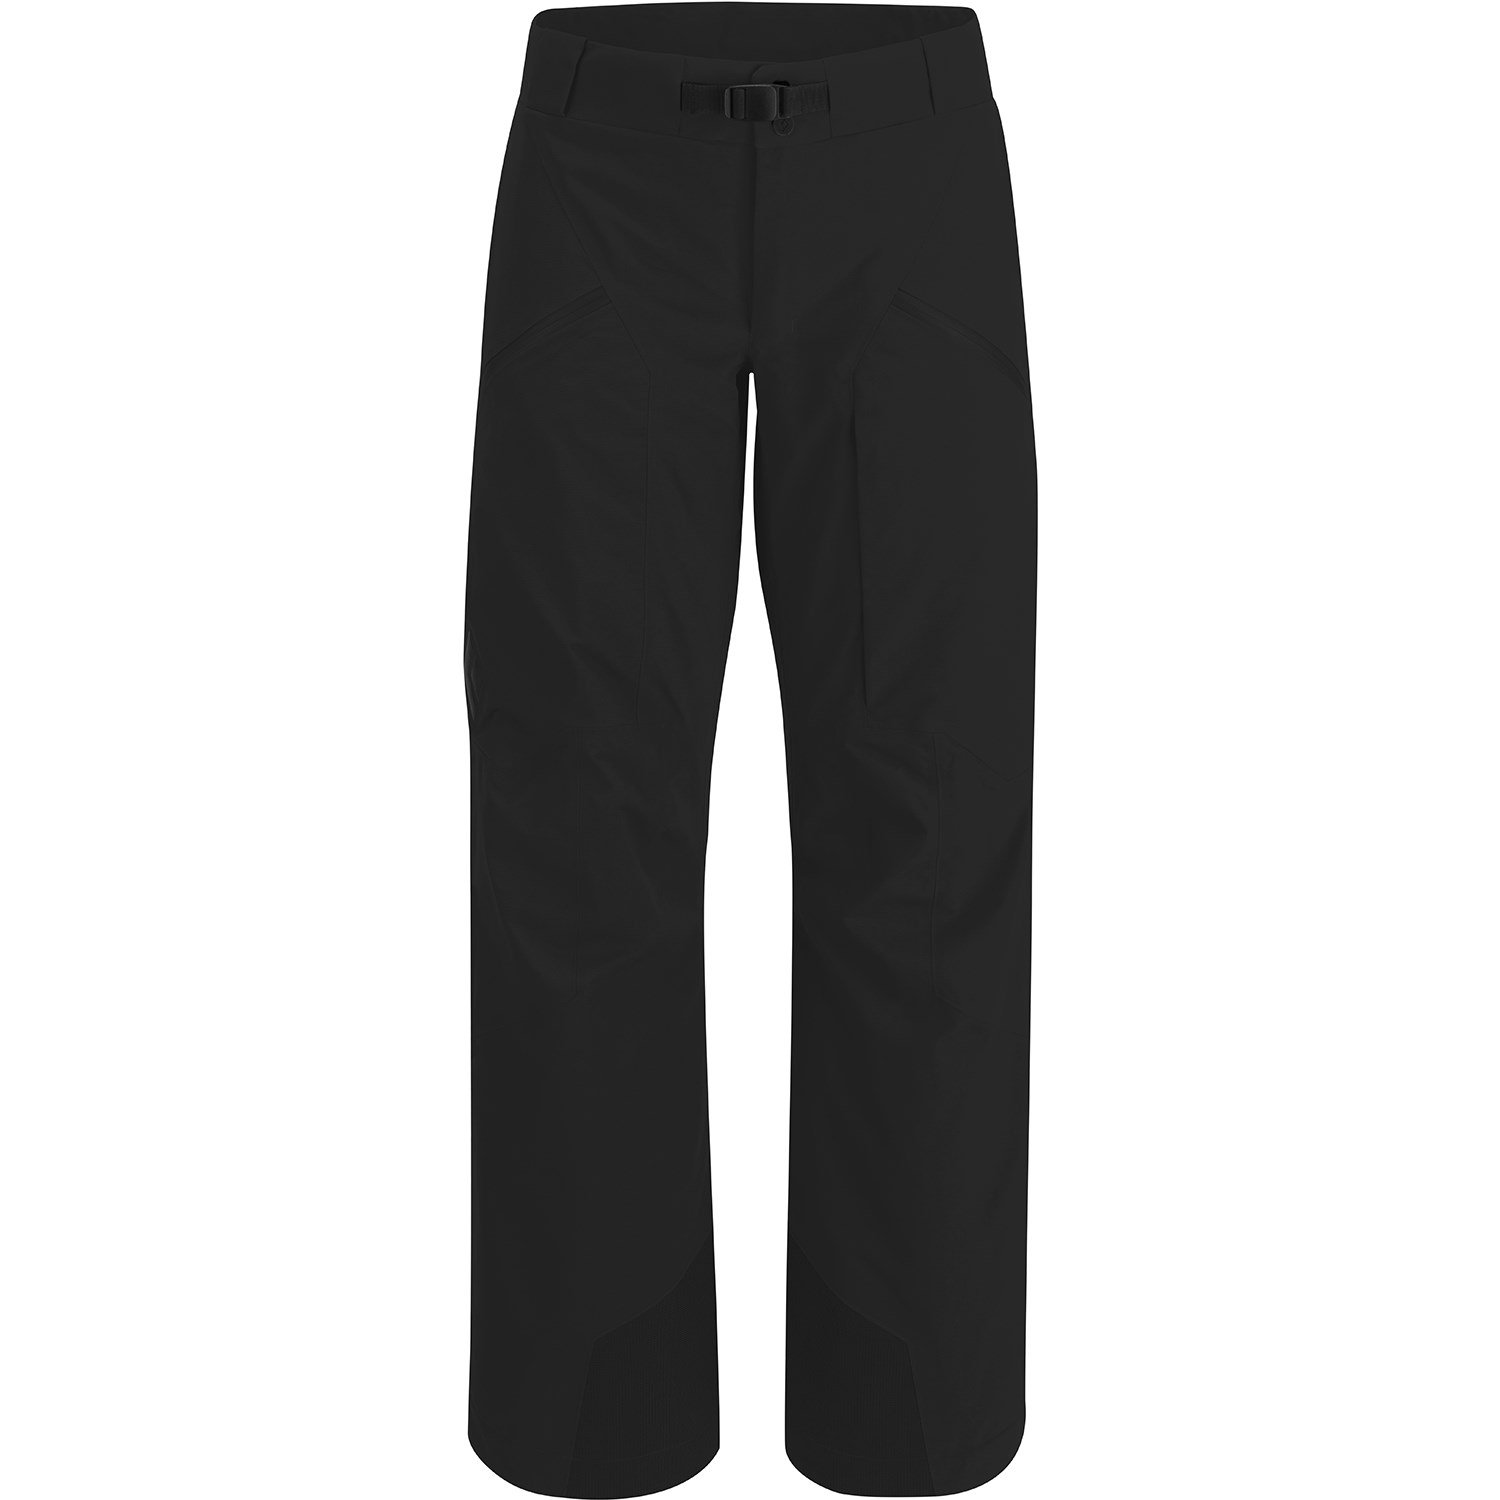 See all results for womens black pants. Top Rated from Our Brands See more. Daily Ritual. Our Brand. Daily Ritual Women's Skinny Stretch Jegging. $ $ 20 00 Prime. out of 5 stars Starter. Our Brand. Starter Women's Performance Cotton Yoga Pants, Prime Exclusive. $ $ 17 99 Prime.